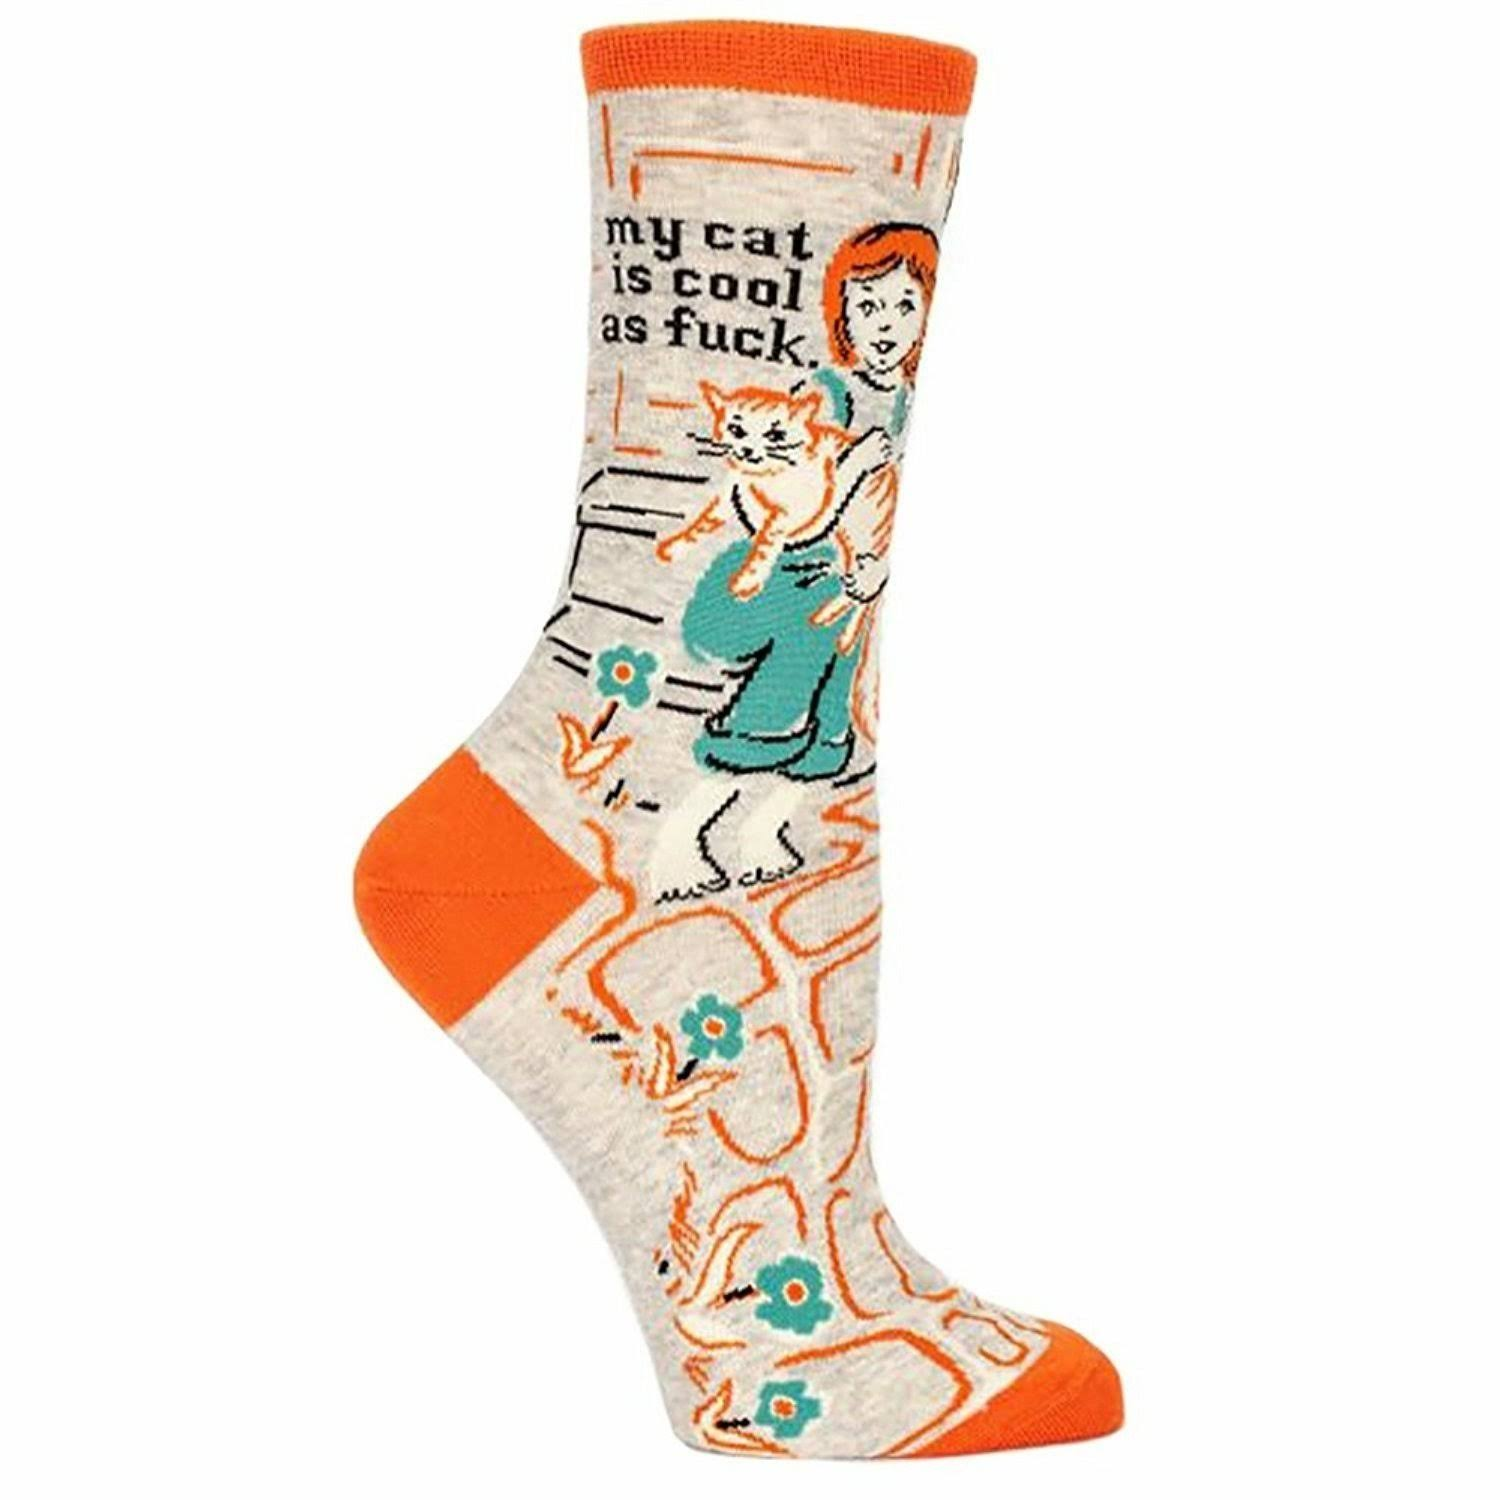 Blue Q Women's Crew Funny Socks - My Cat Is Cool As F*ck, Gray and Orange